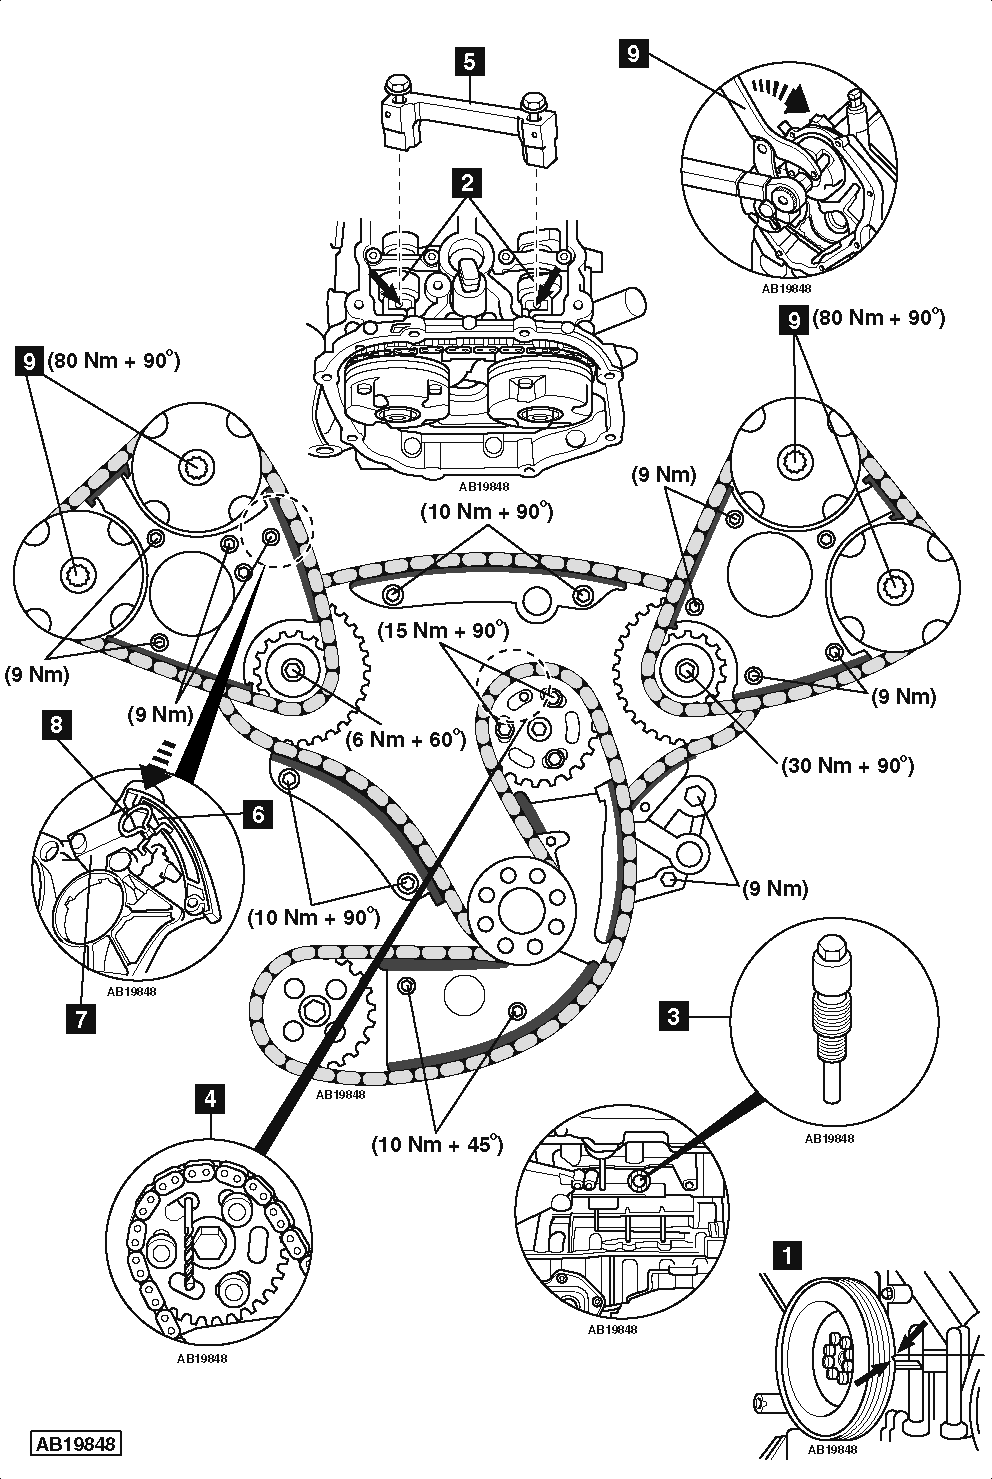 wiring harness nissan xterra with 2004 Accord Wiring Diagram on 4722 2002 Pathfinder Oxygen Sensor as well Nissan Rogue Engine Diagram besides Nissan Altima Engine Diagram Blueprints furthermore Discussion T8778 ds562537 also 8.